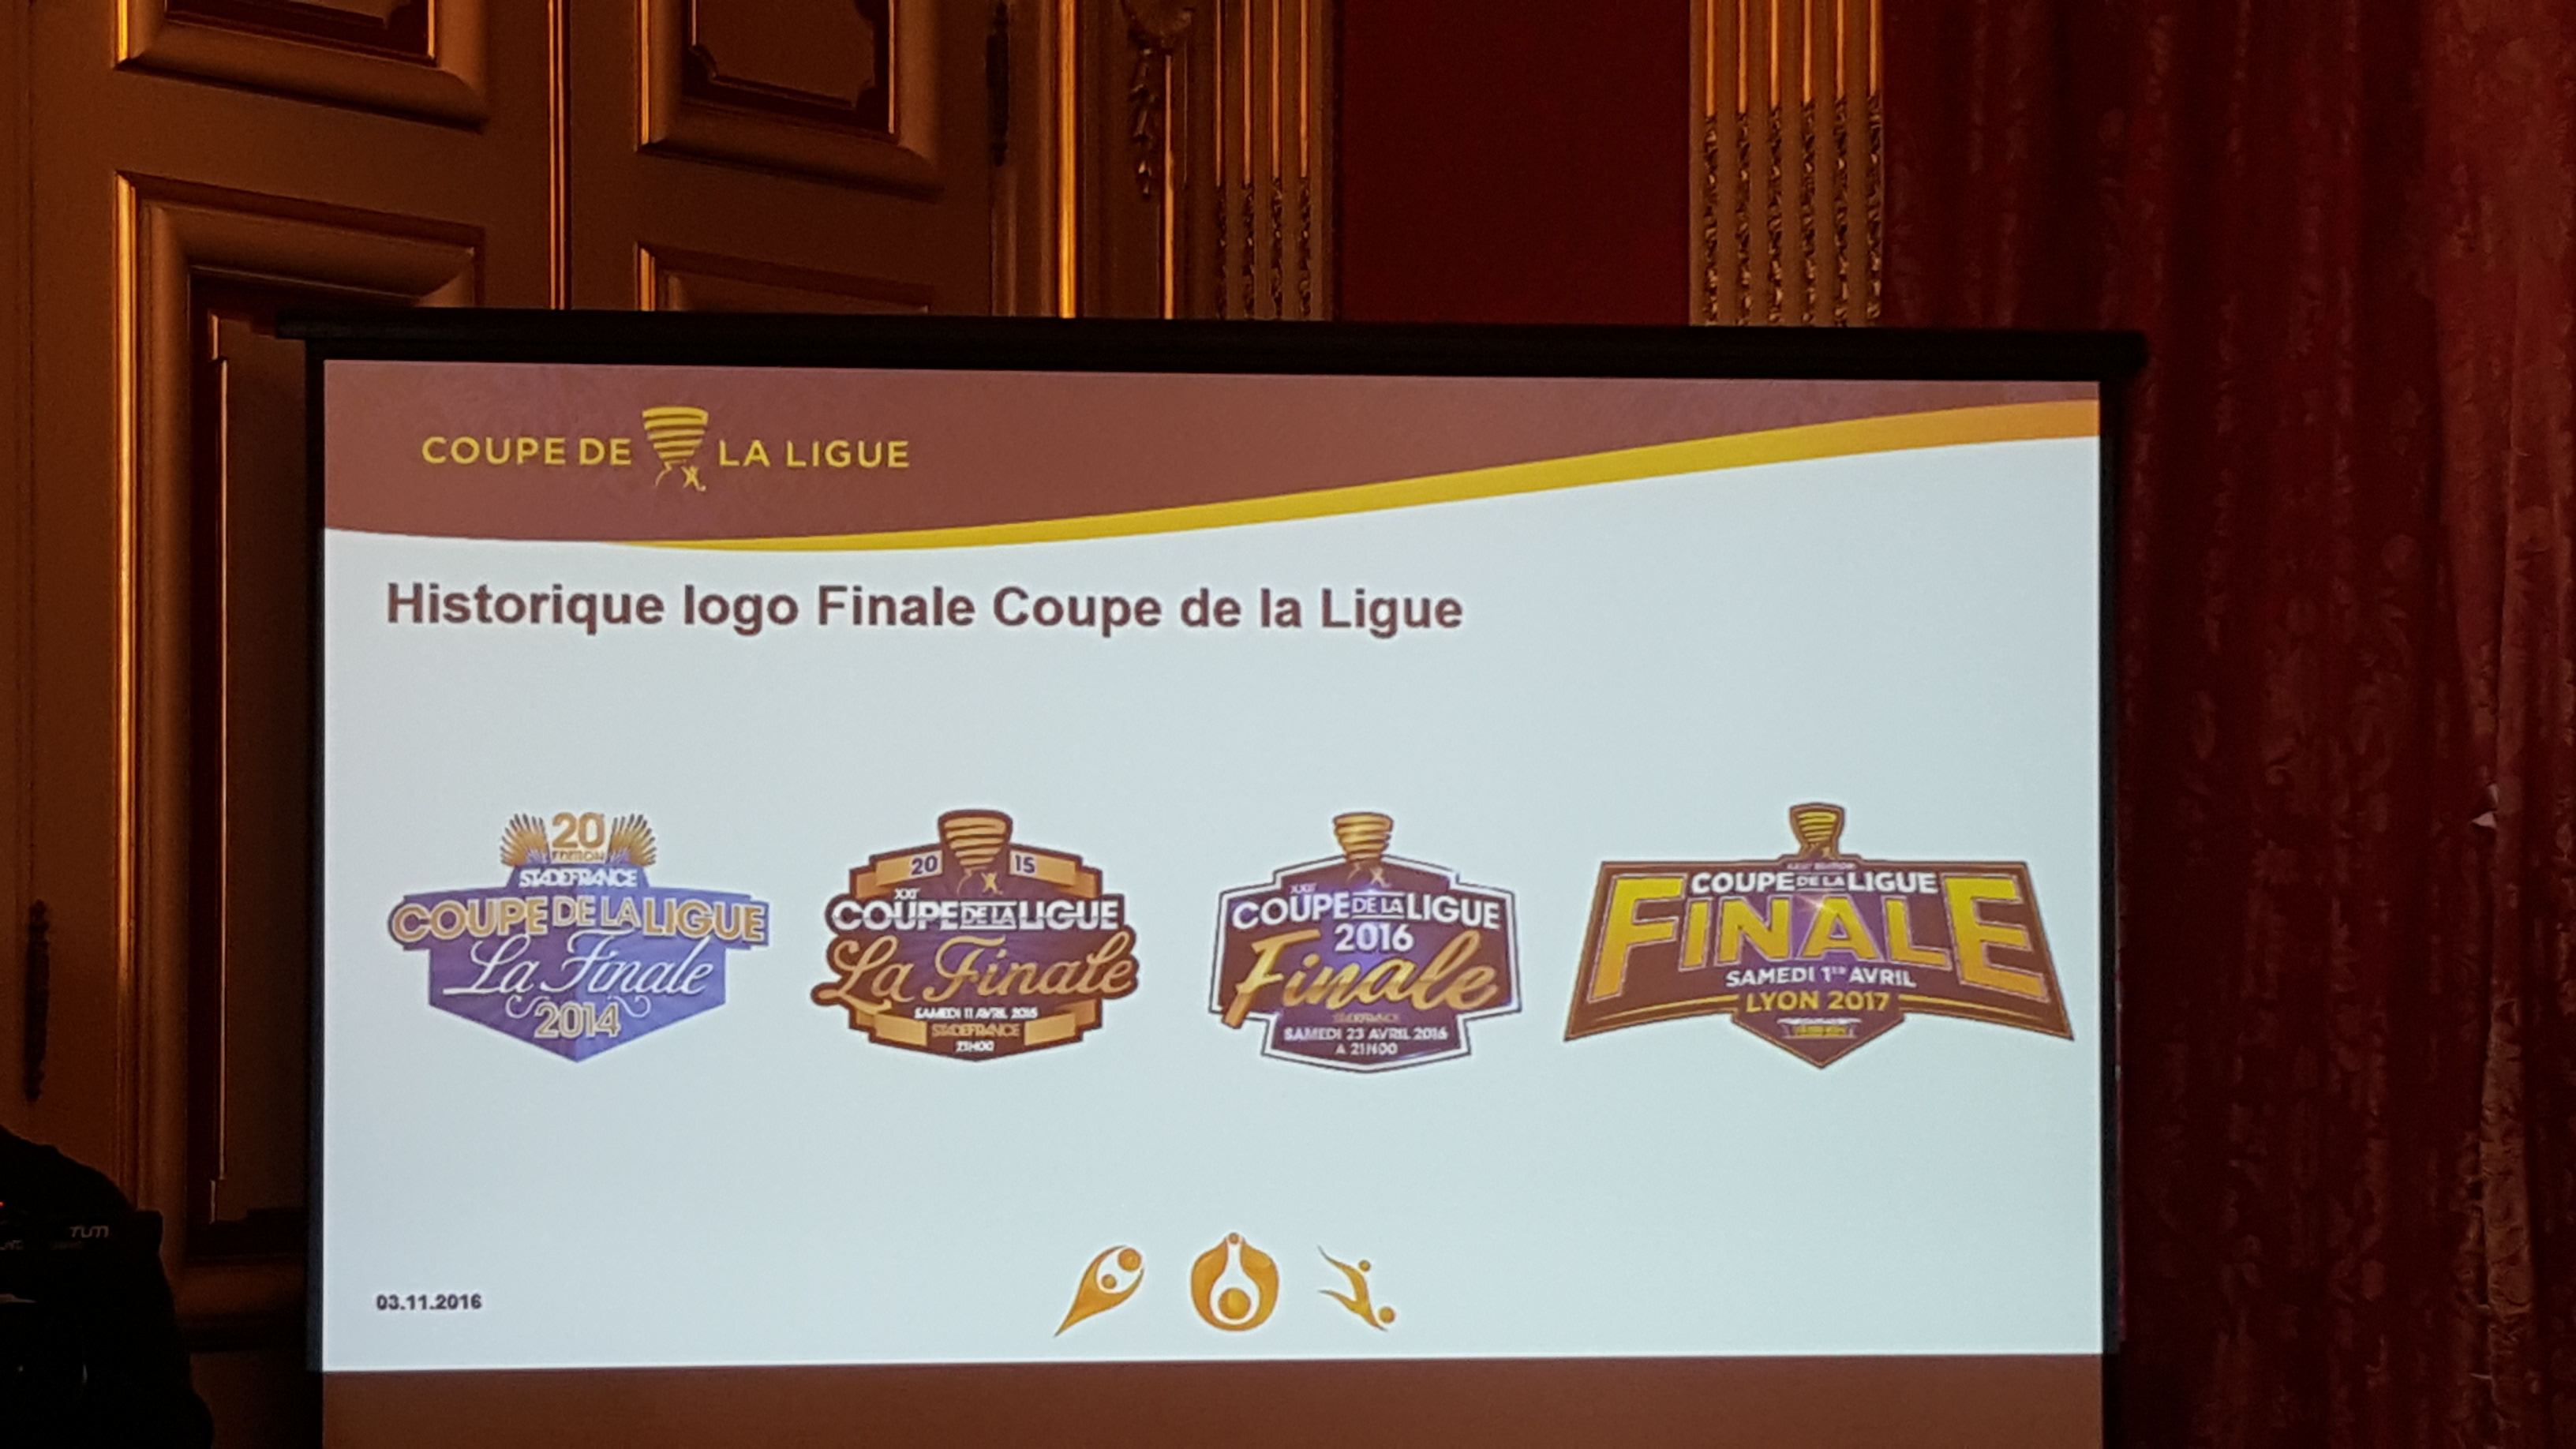 Billetterie affiche la finale de la coupe de la ligue - Billetterie finale coupe de la ligue ...